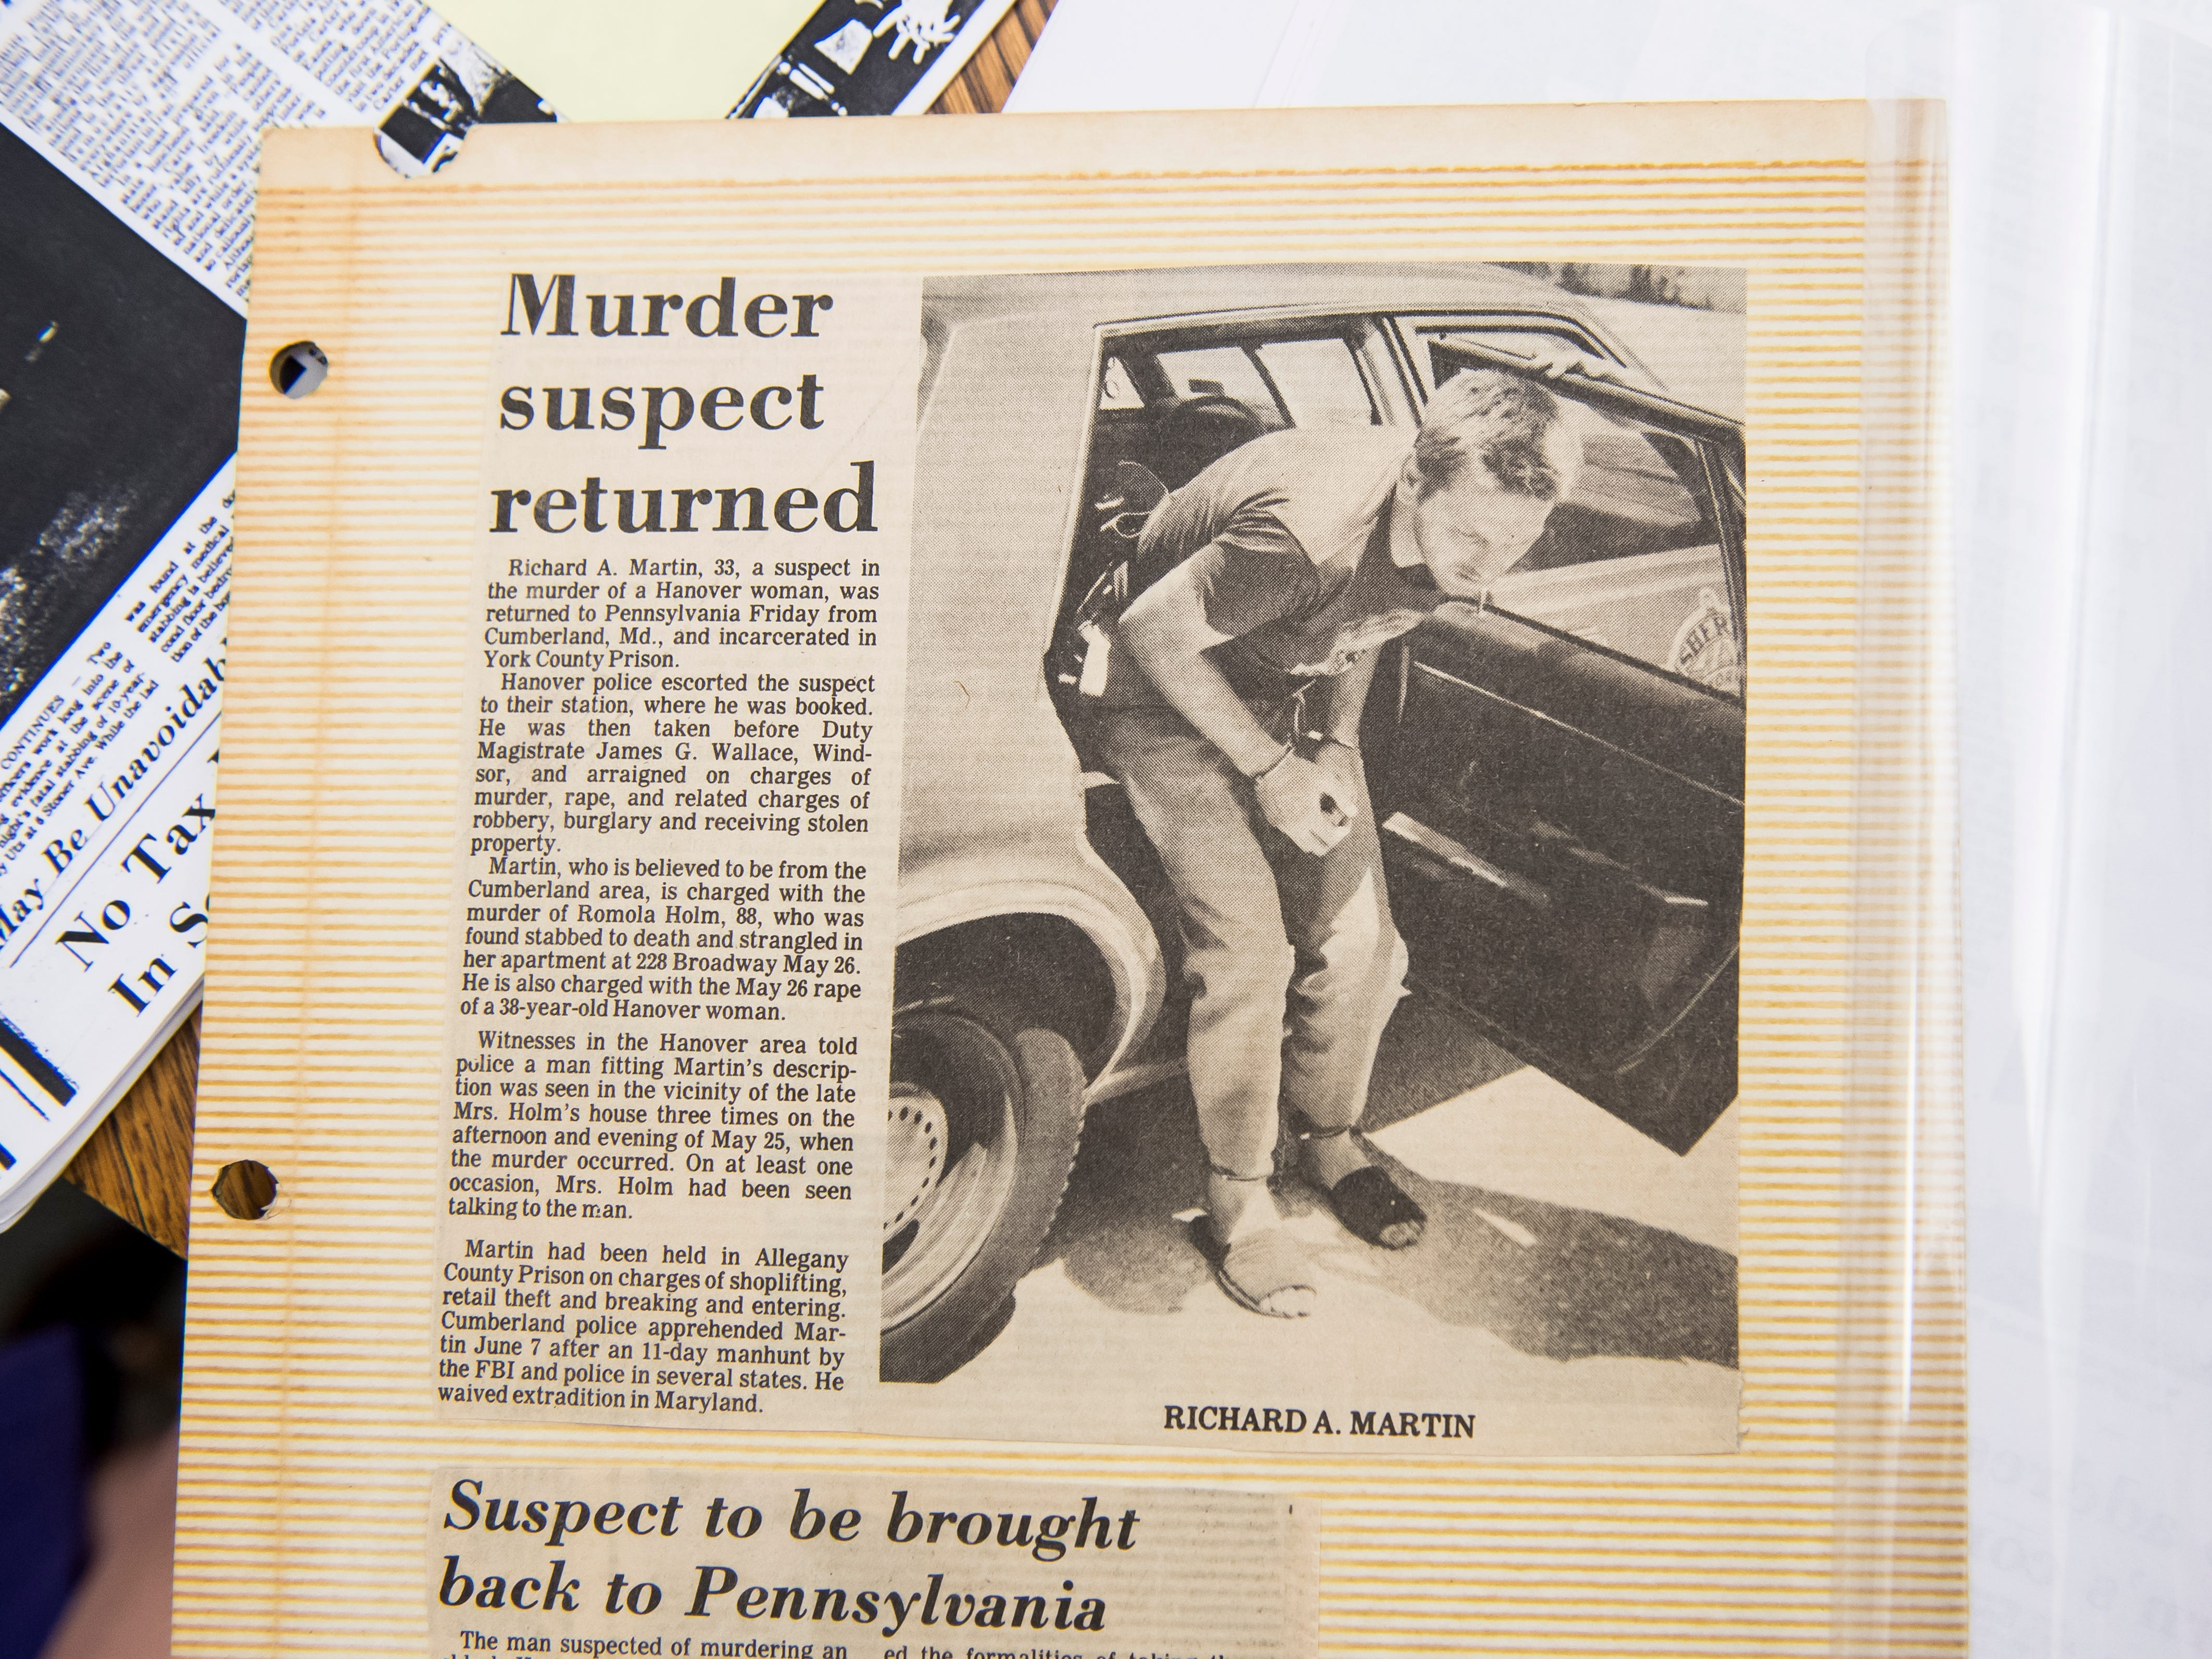 Newspaper clippings from 1984, when Richard Martin was arrested in Maryland and extradited to Pennsylvania on charges of murder, rape, and related charges of robbery, burglary and receiving stolen property.